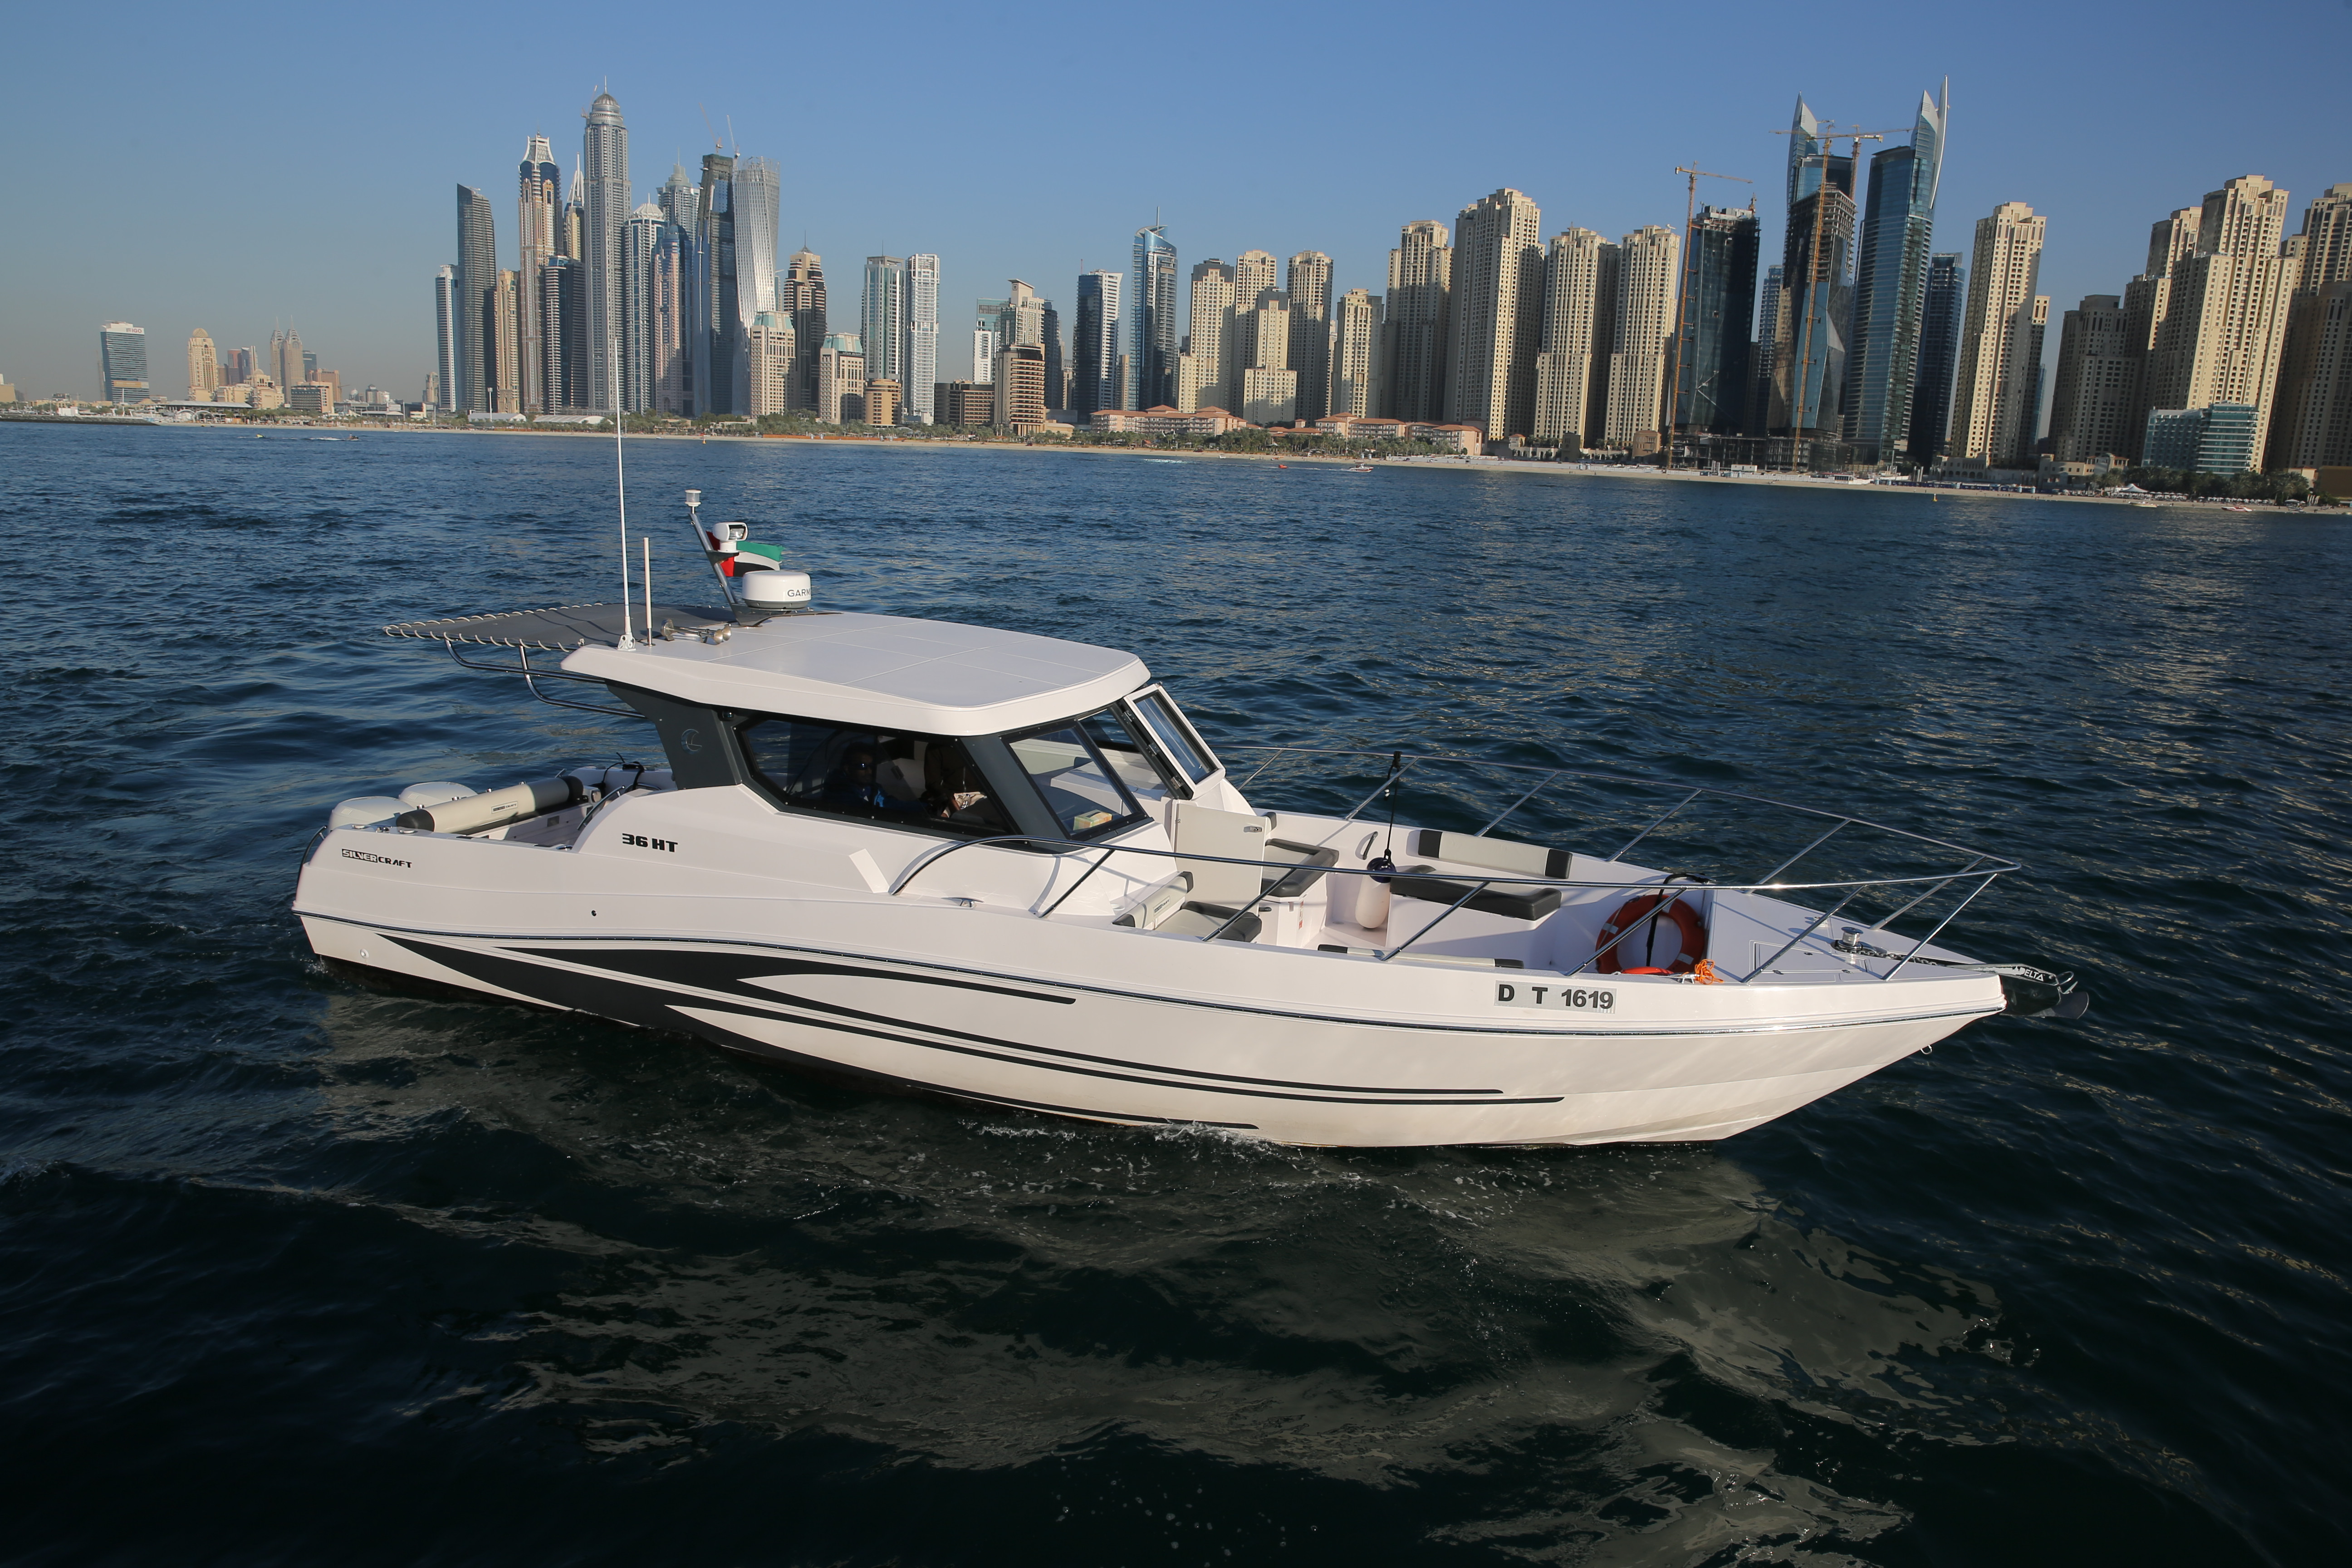 Speed Boat Cruise - Silver Craft 36HT 15